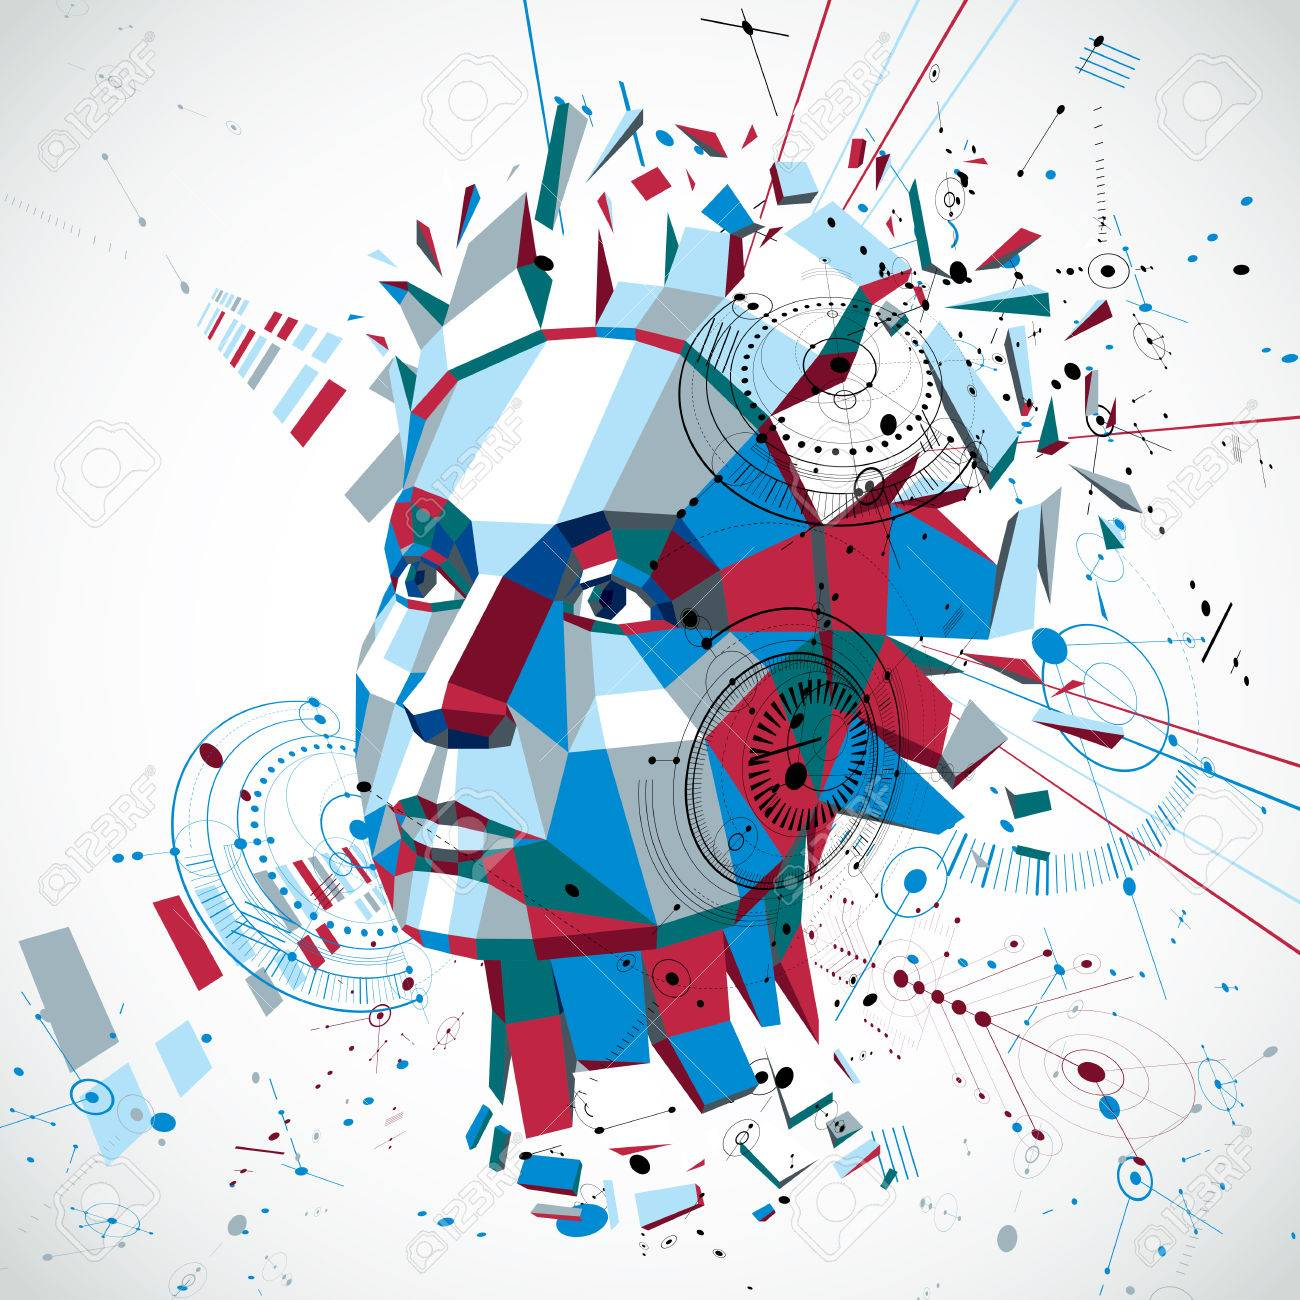 Communication technology 3d vector background made with engineering draft elements and mechanism parts, science subject. Low poly illustration of human head full of thoughts, intelligence allegory. Stock Vector - 54749863